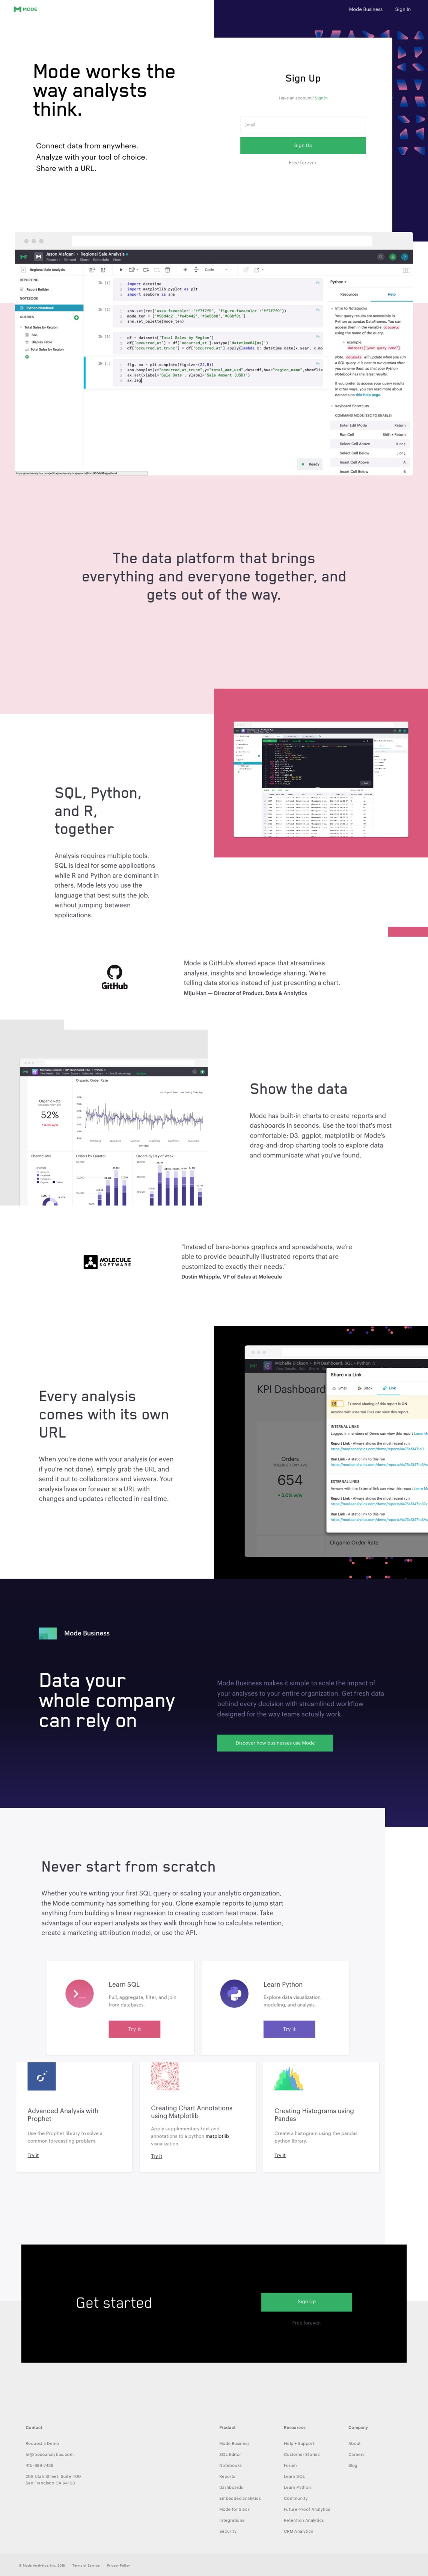 Mode - The Collaborative Analytics Platform for Data Analysts